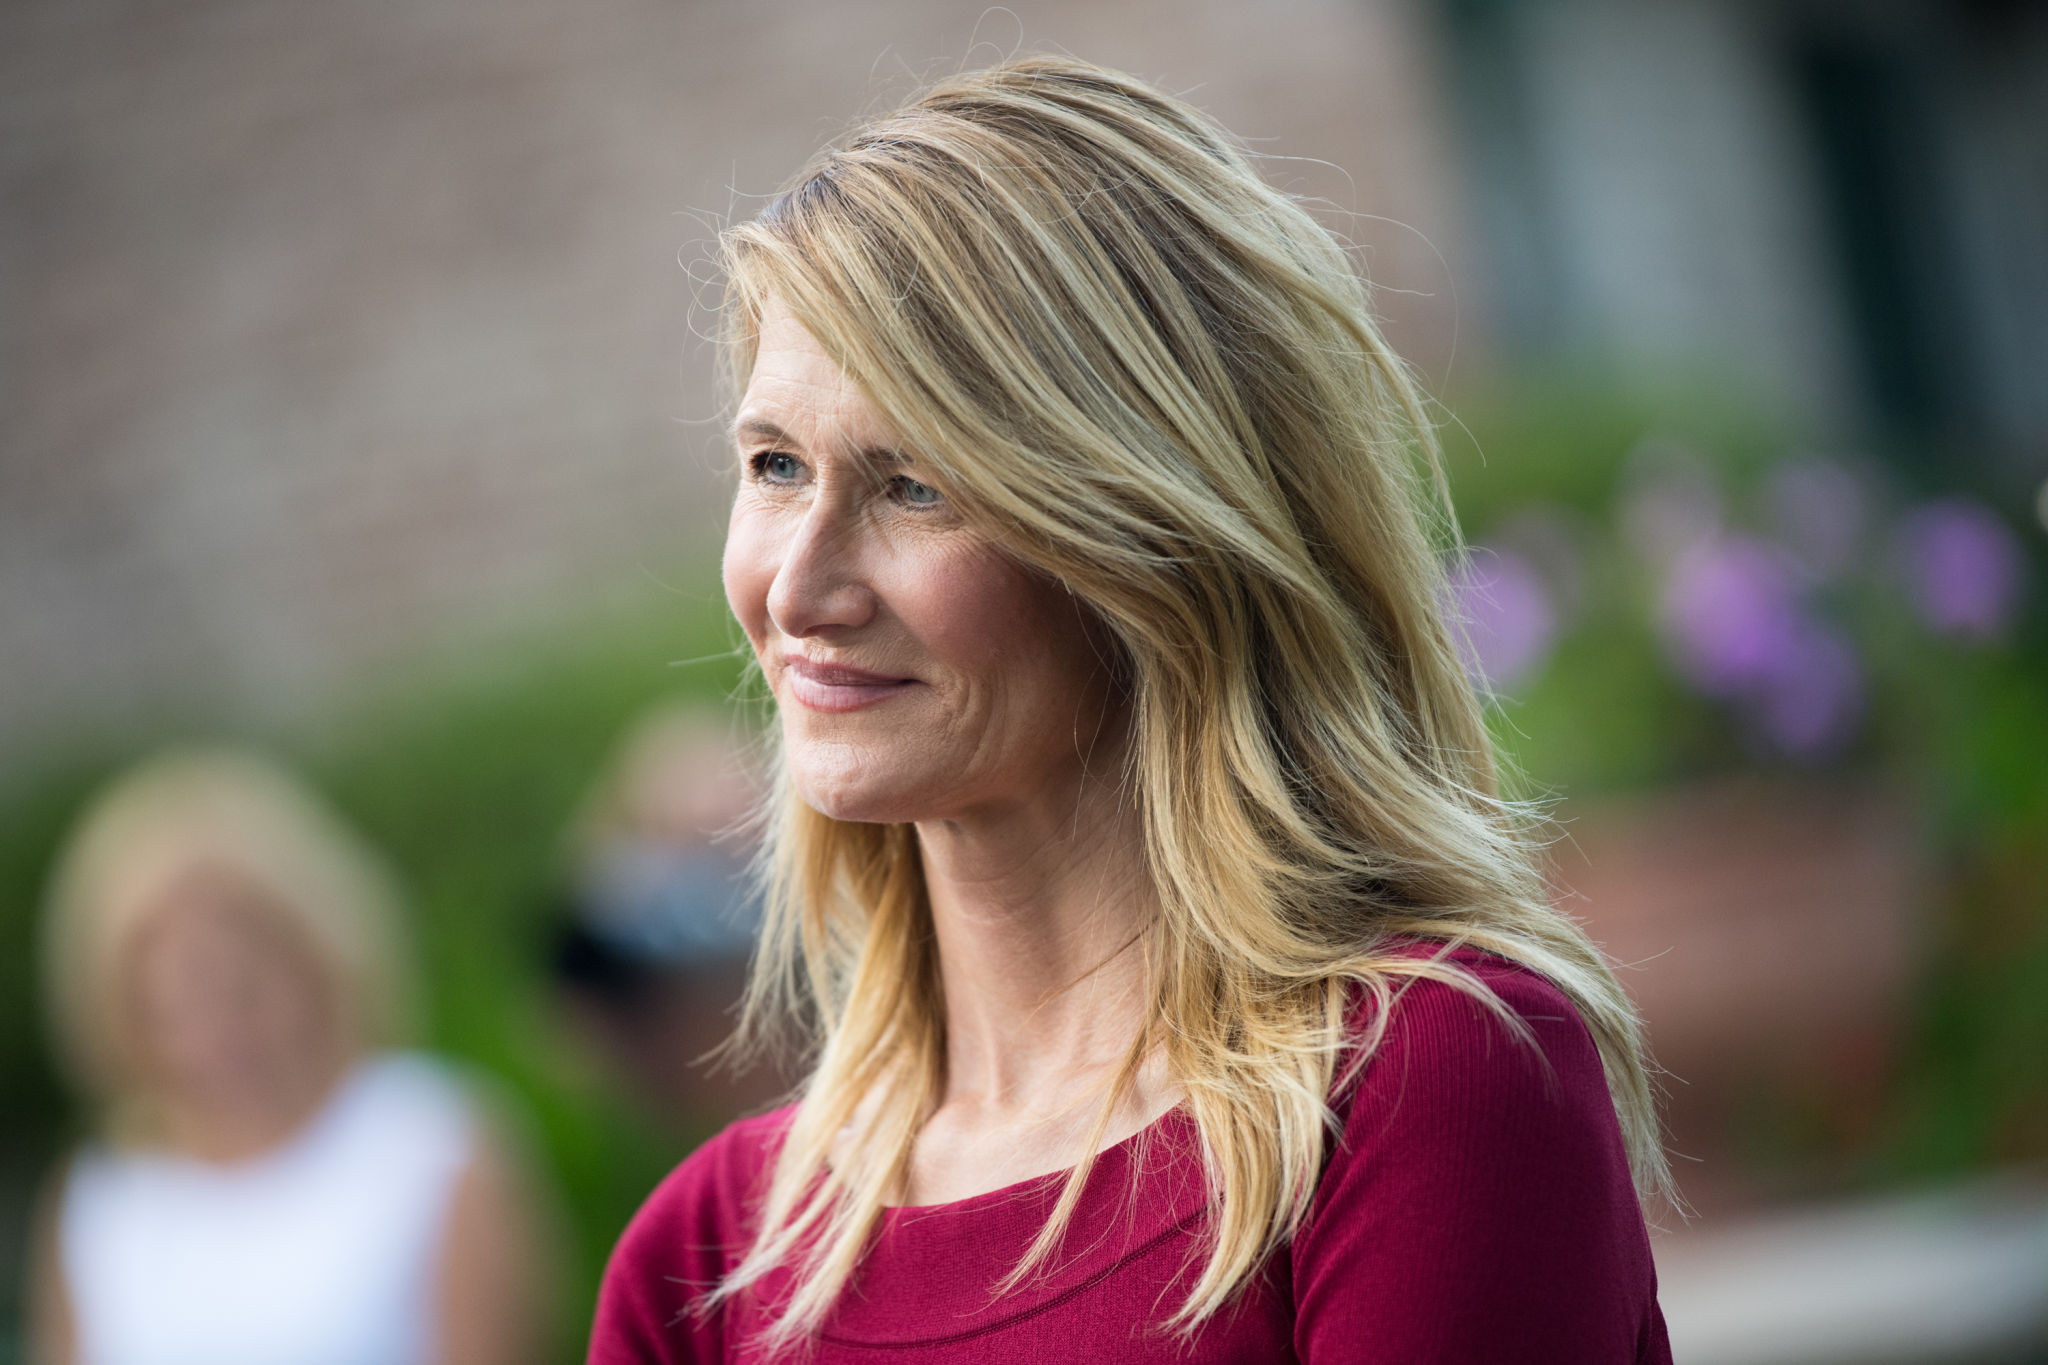 Laura Dern Wallpaper